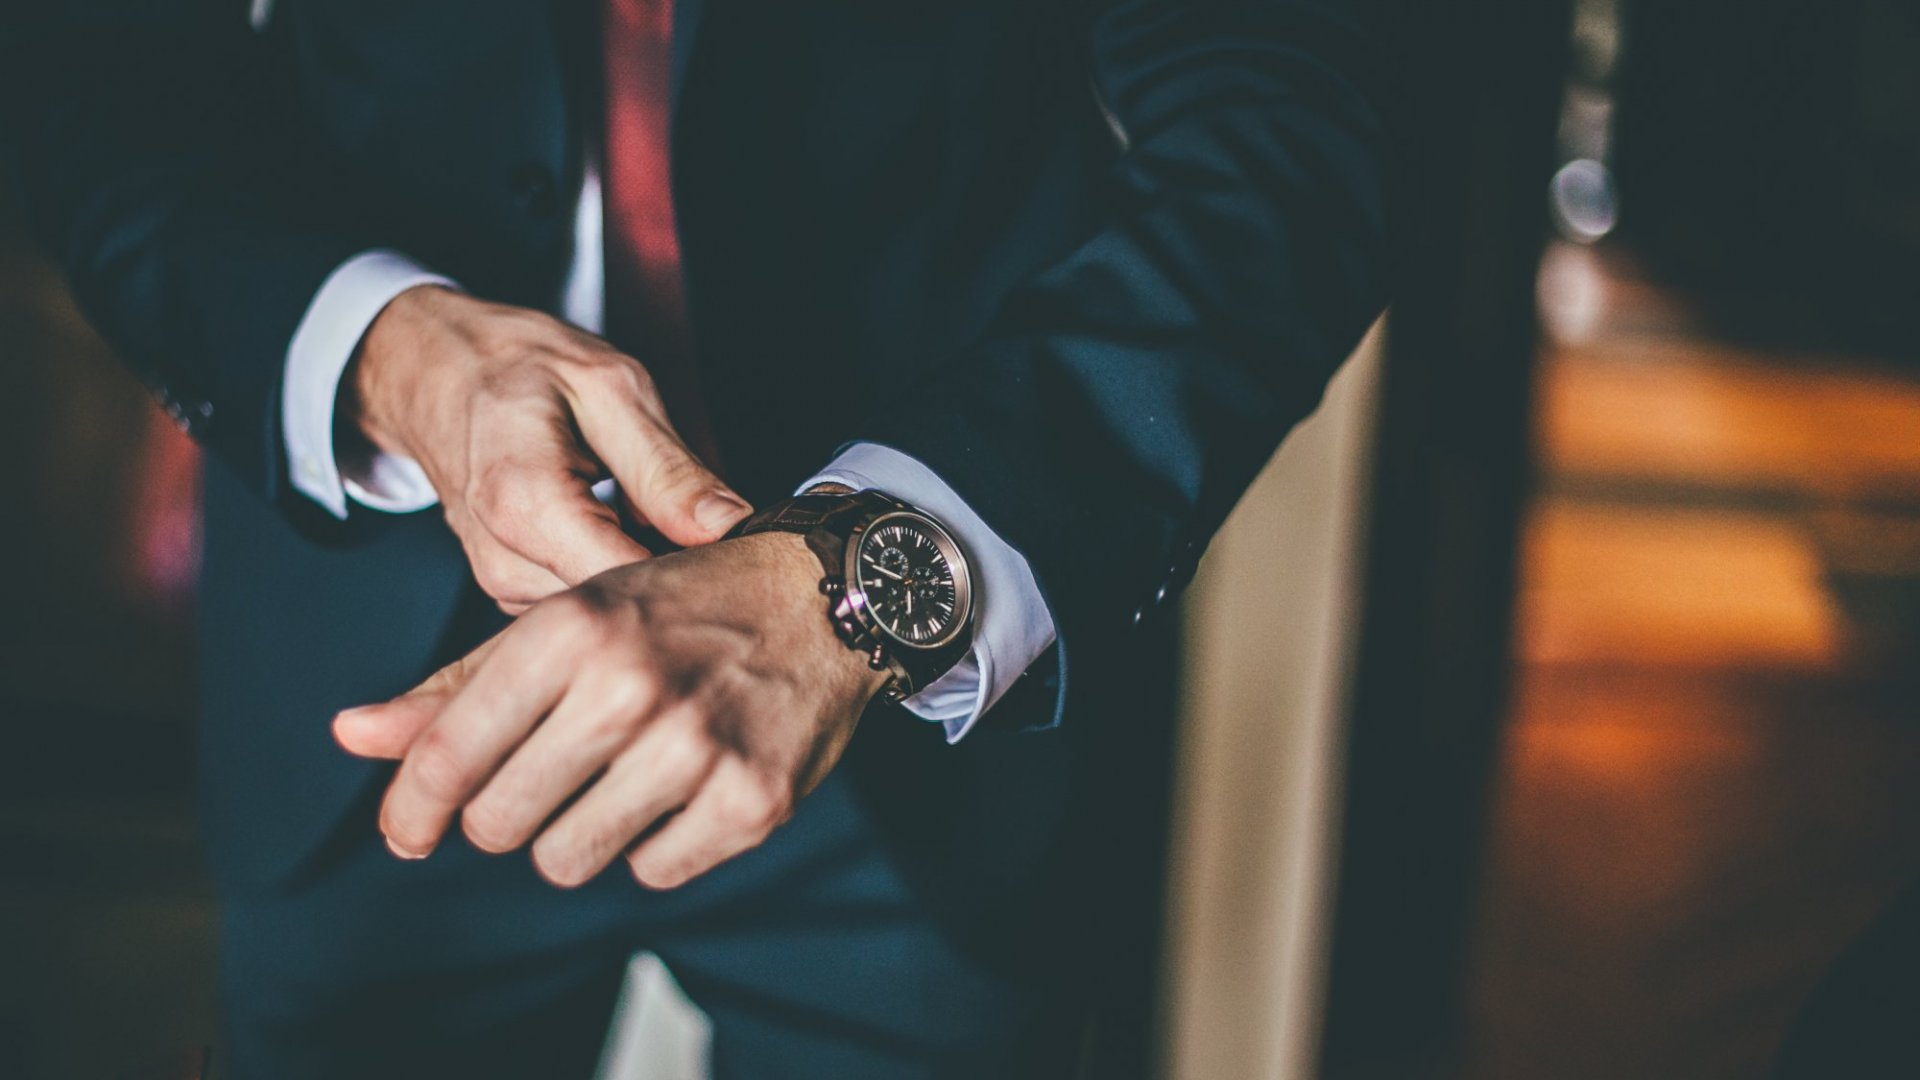 5 Lessons To Make Your Startup Profitable From A Thriving Watch Club Business